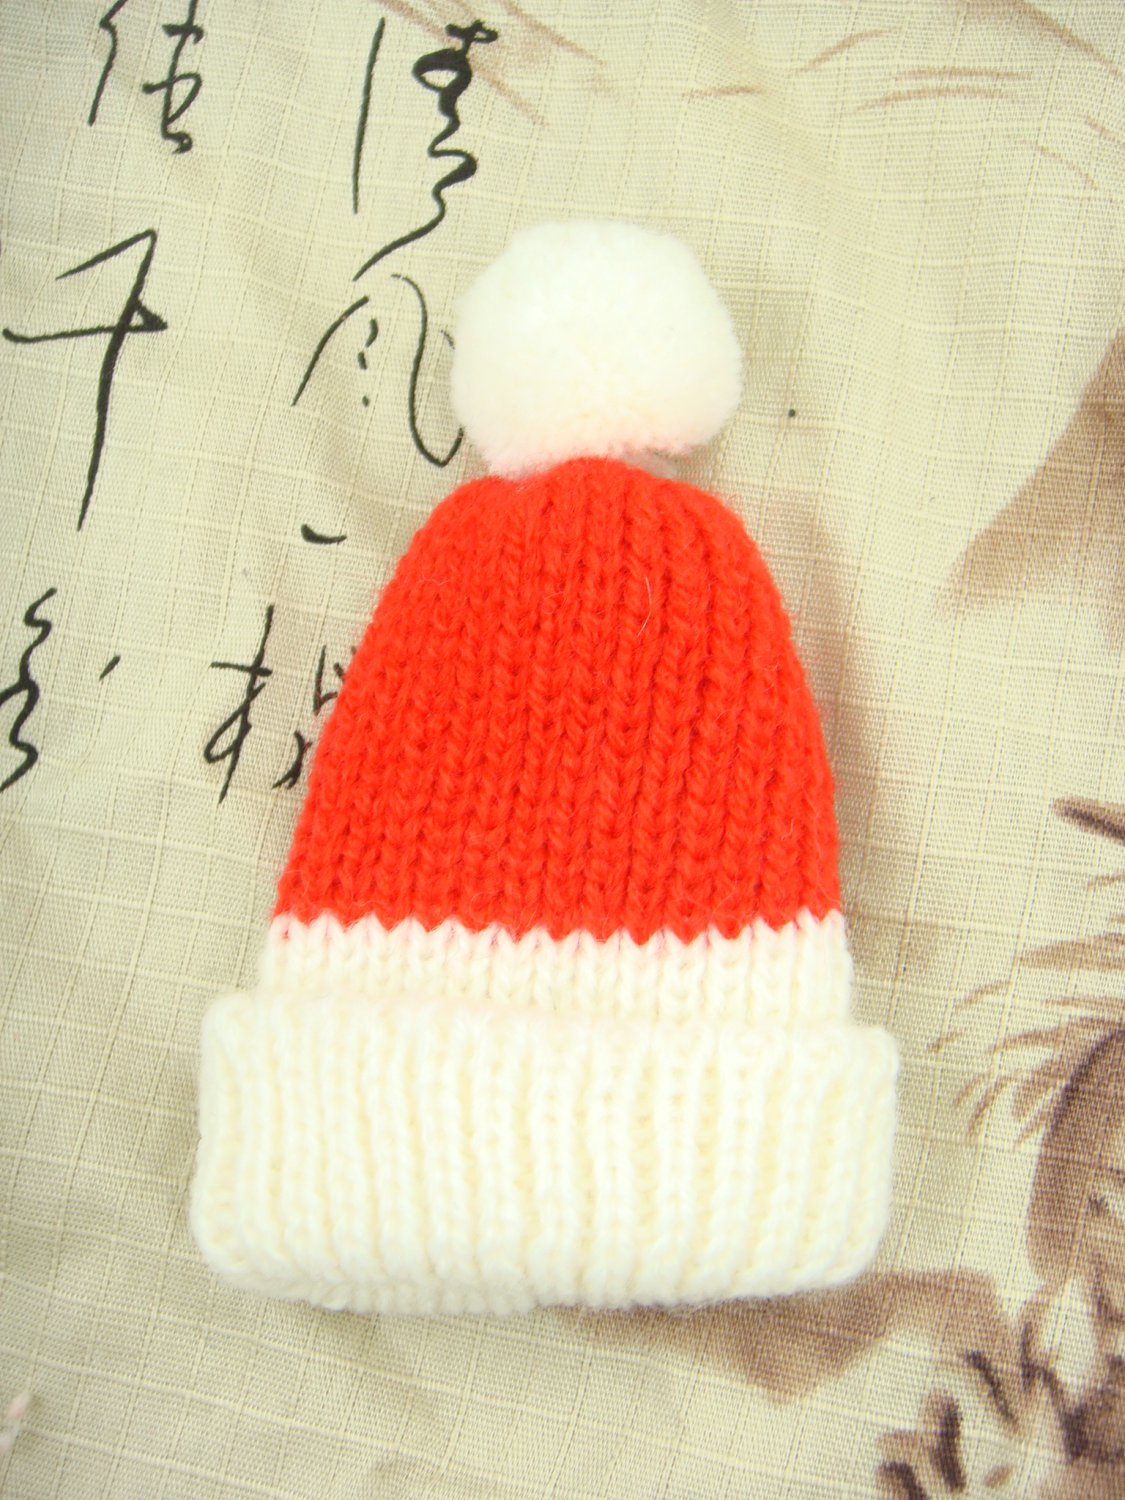 BJD Doll 1/8 Tiny Size Xmas Christmas Red and White Wool Hat